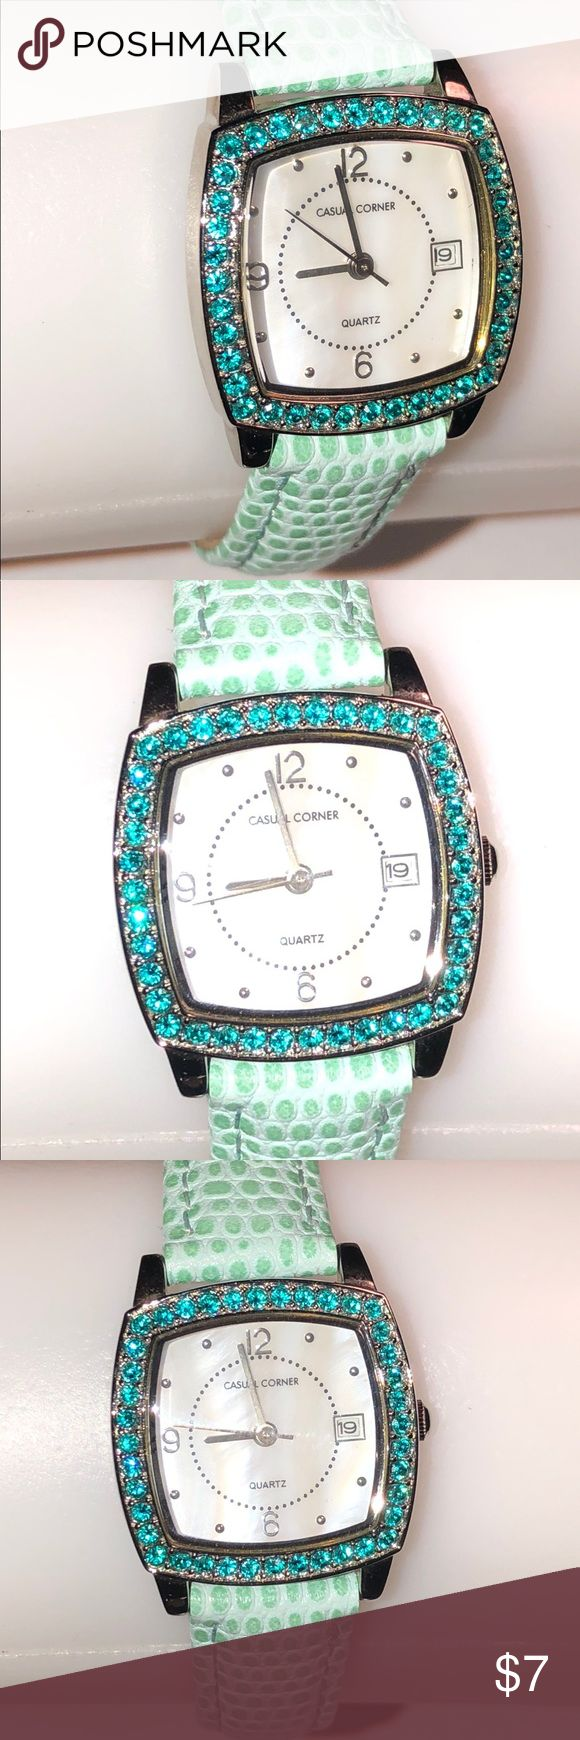 Gorgeous Casual Corner Ladies Aqua Quartz Watch This is a super cute aqua watch by Casual Corner. It has a genuine leather, aqua band with a tang buckle closure. It has a square case lined with simulated gemstones. It is a previously used item with some minor use wear, as shown in the pics. The battery is brand new & the watch works great. Casual Corner Accessories Watches